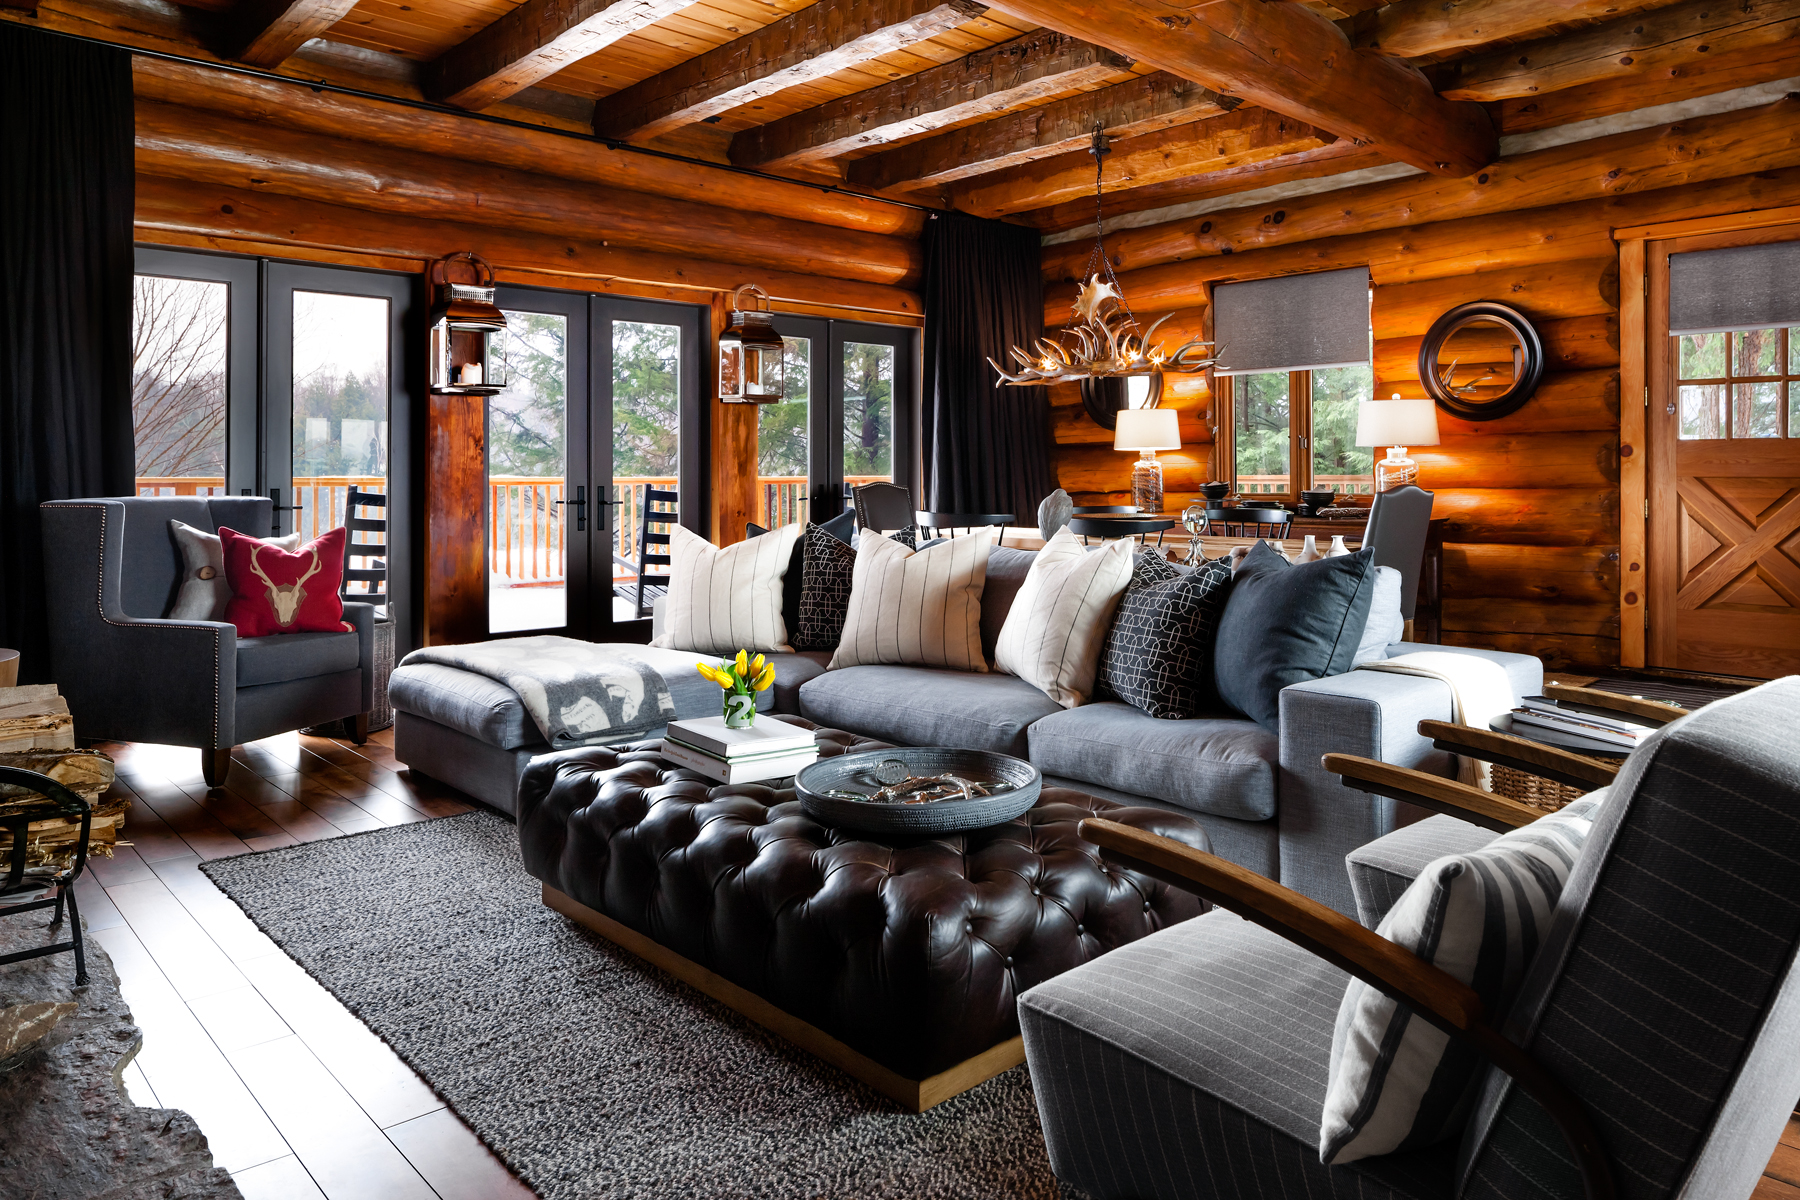 Bling Up Your Cottage For Summer